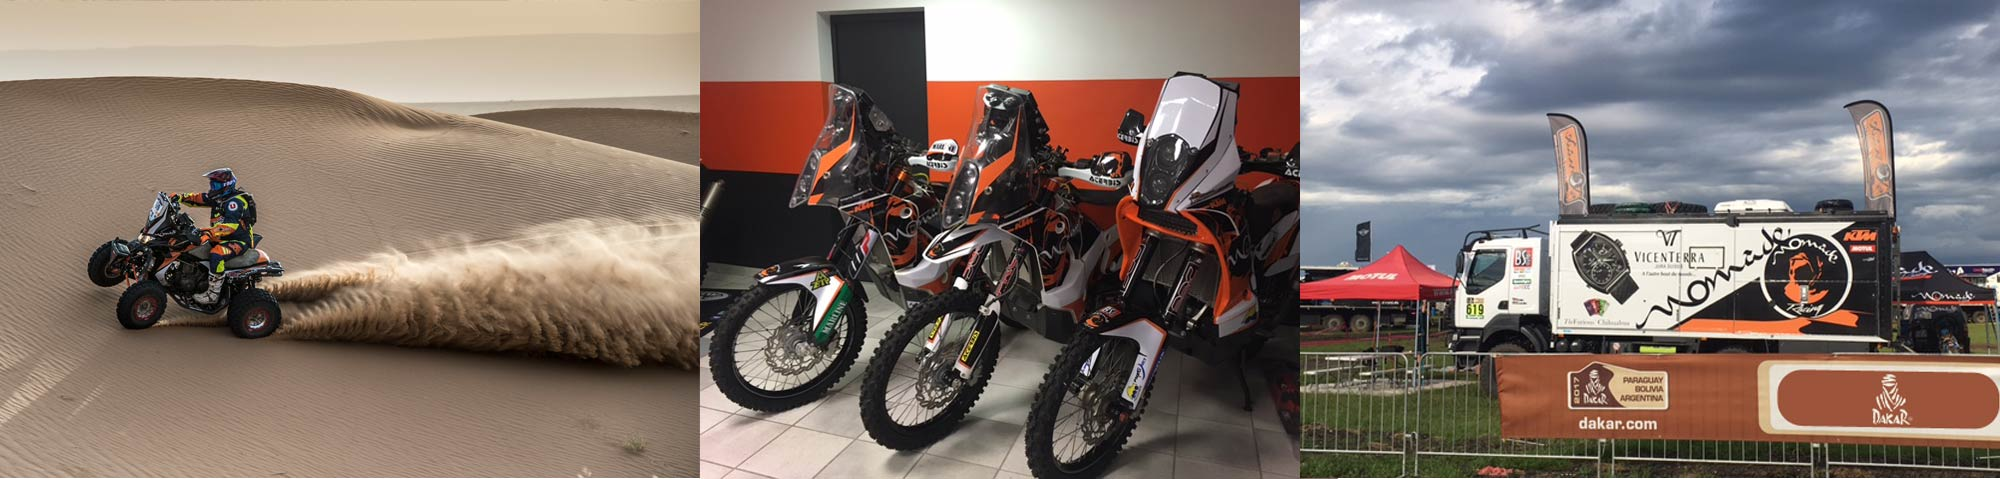 Nomade Racing Shop Klim Kriega 6D Motul Parts Europe Préparateur Moto Quad Dakar 2018